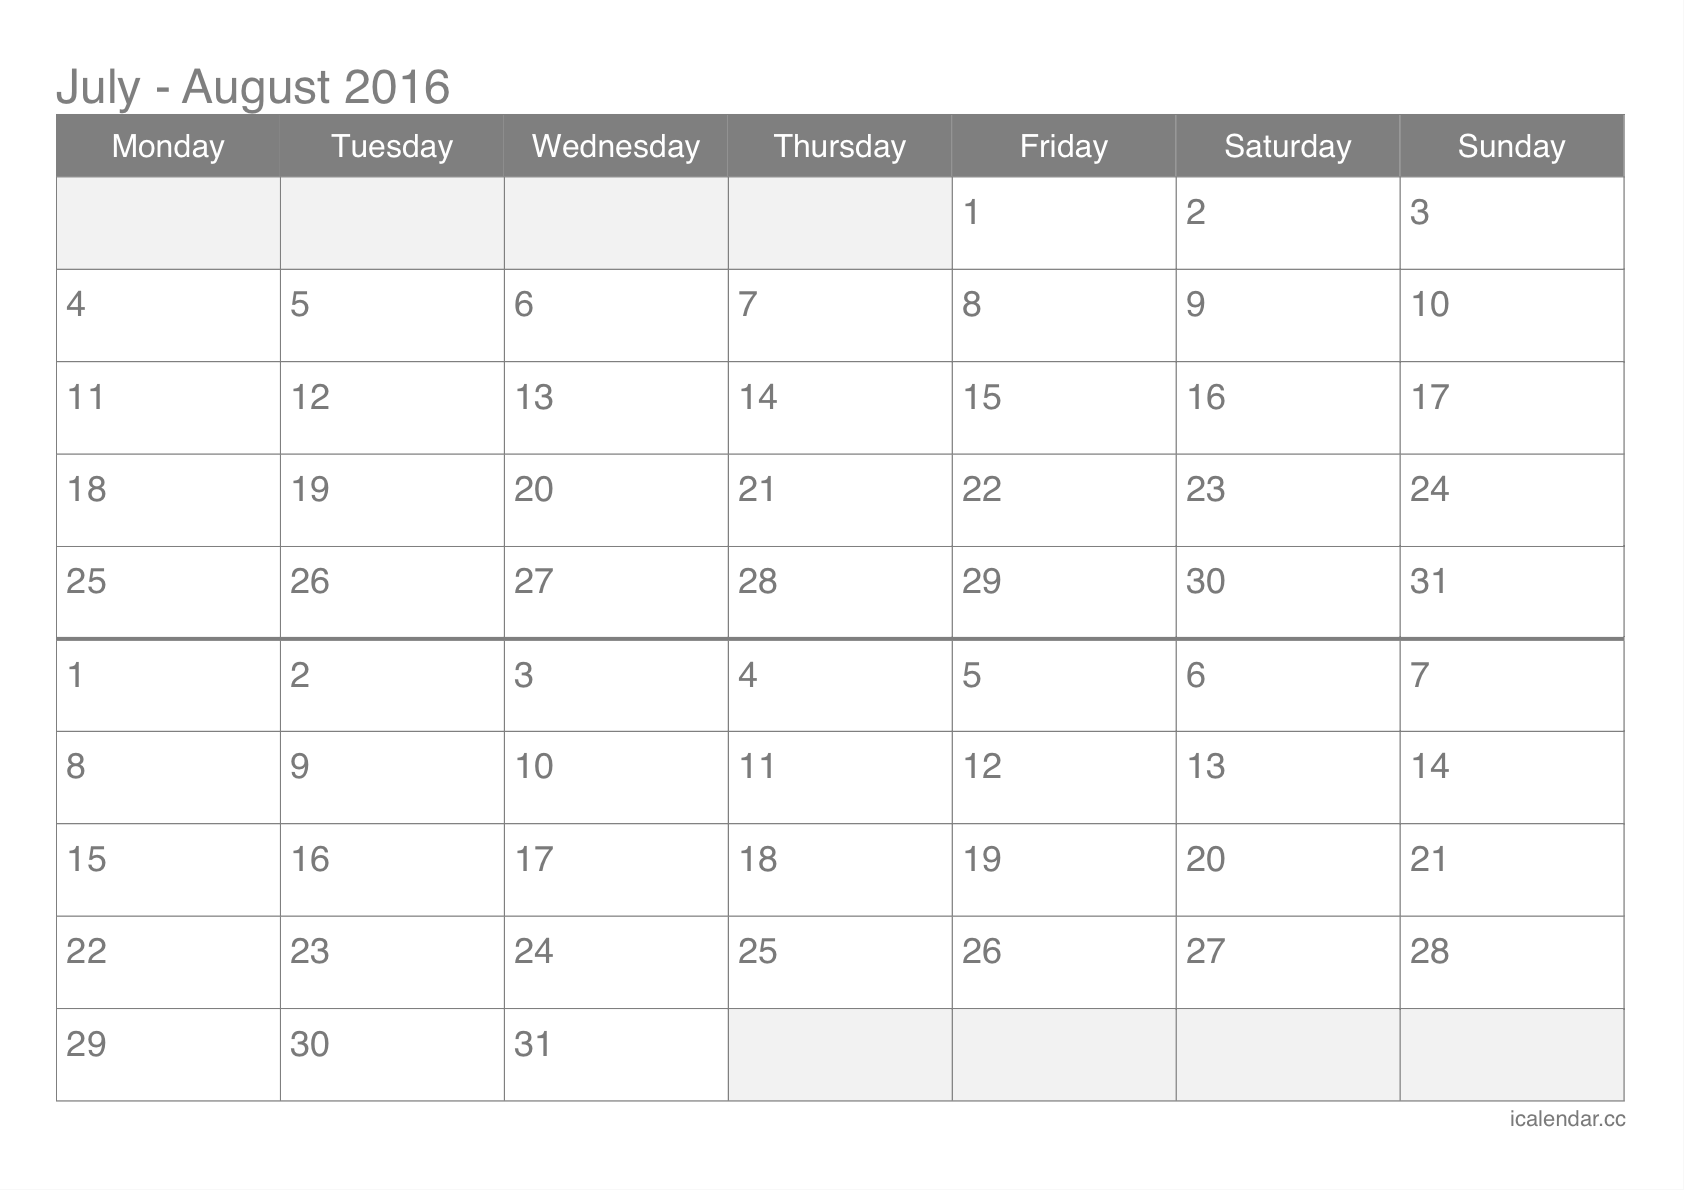 July and August 2016 Printable Calendar - icalendars.net